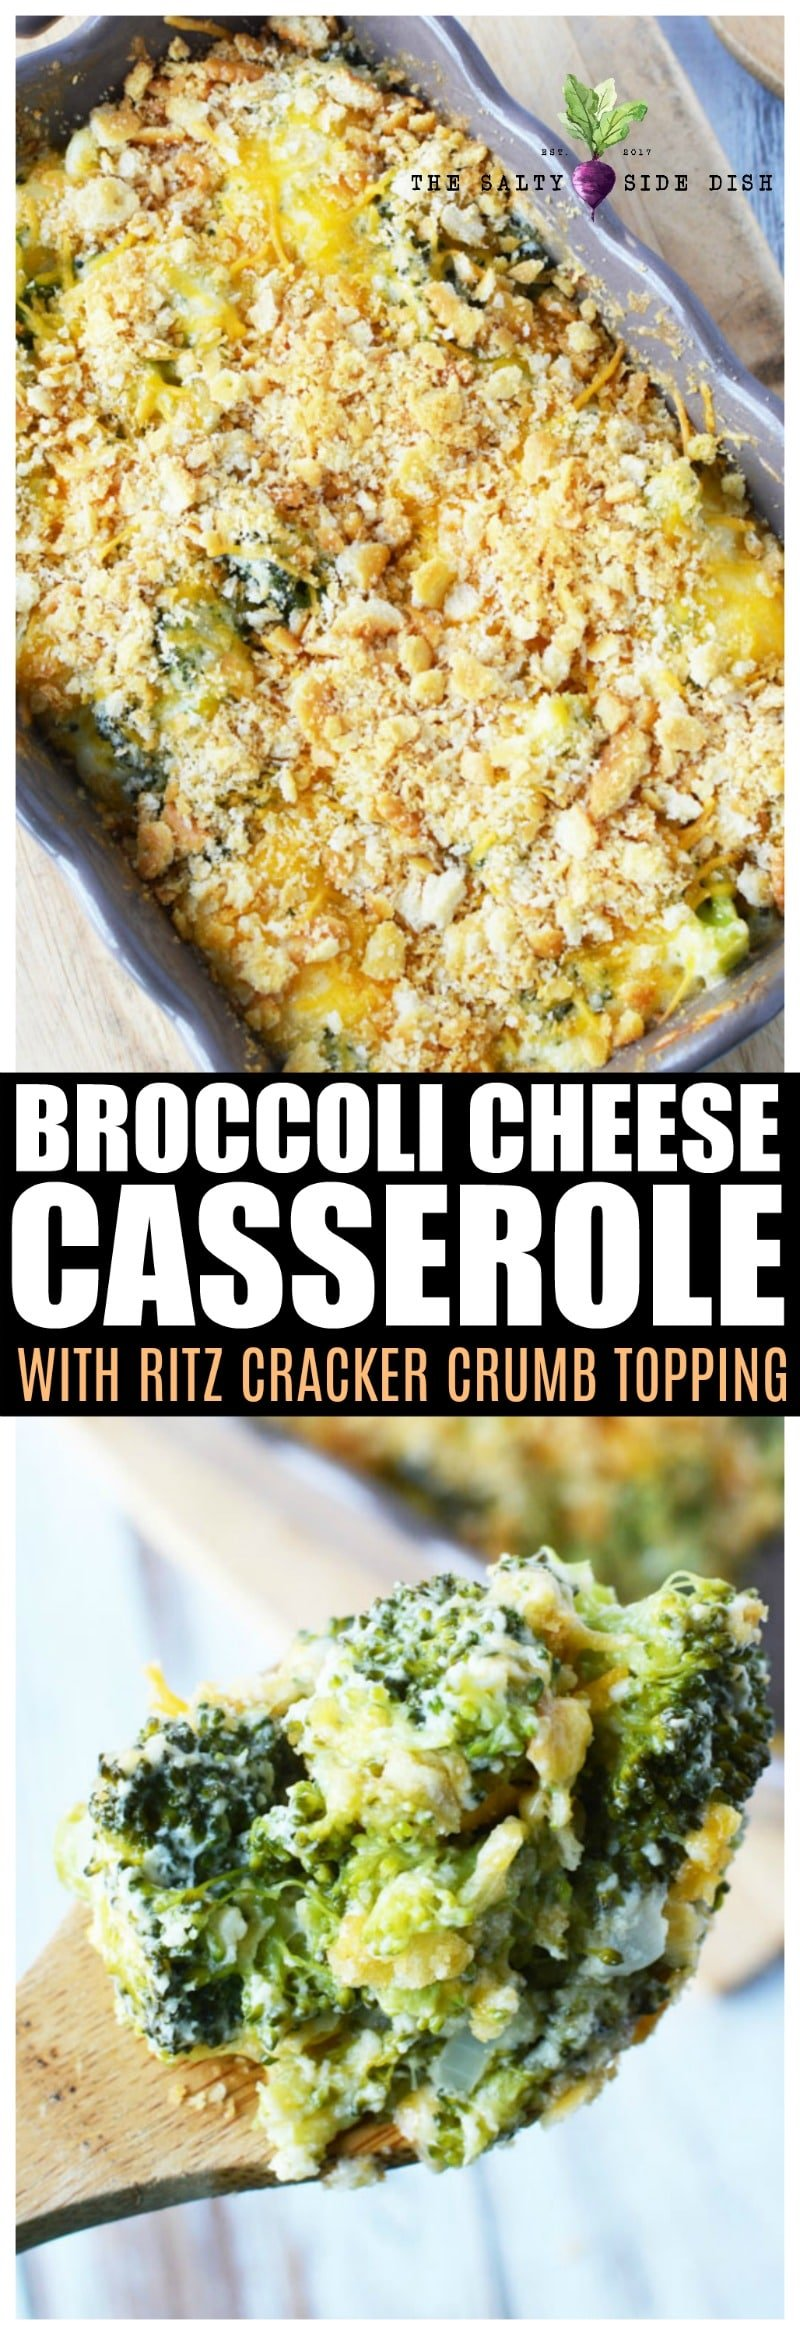 Broccoli Cheese Casserole an ultra easy and ultra cheesy side dish with ritz crackers #broccoli #casserole #sidedish